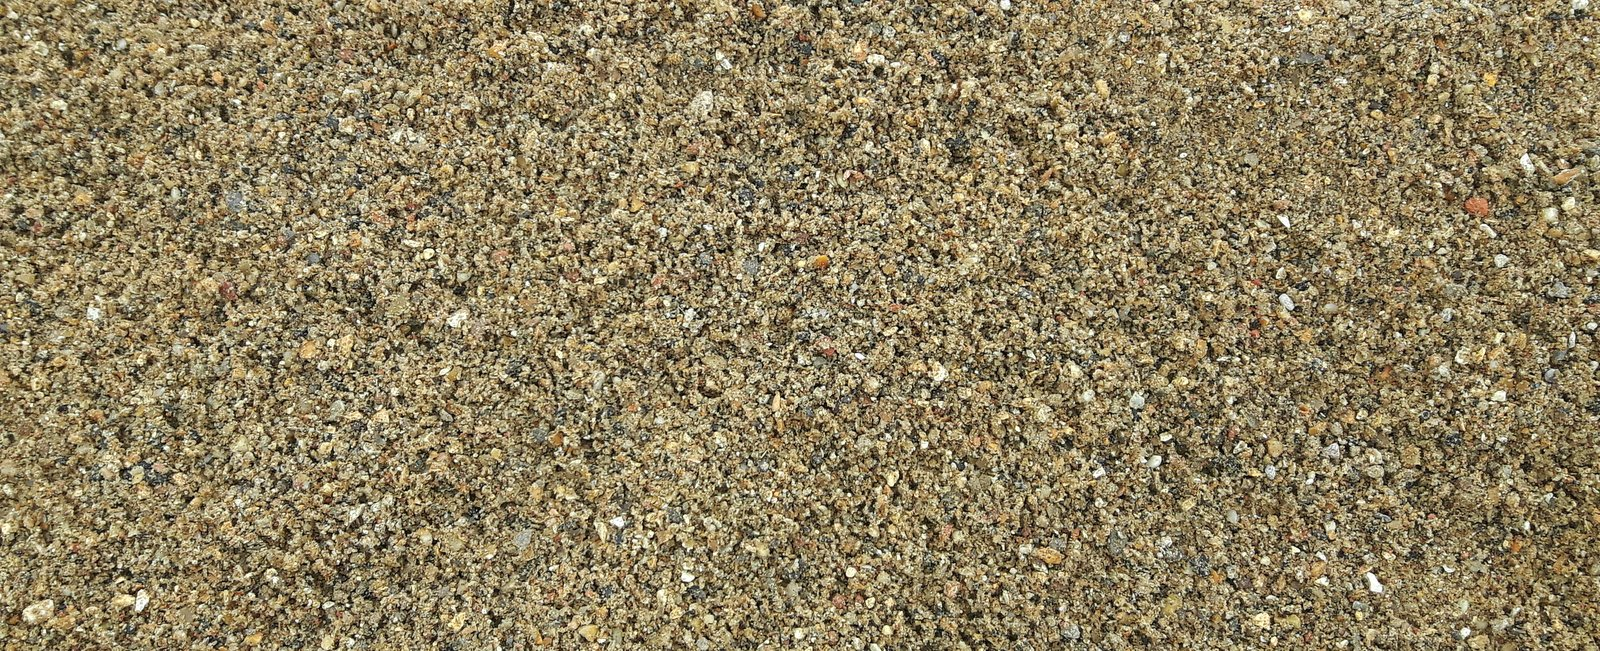 Sharp washed sand, grit at Canford Recycling Centre